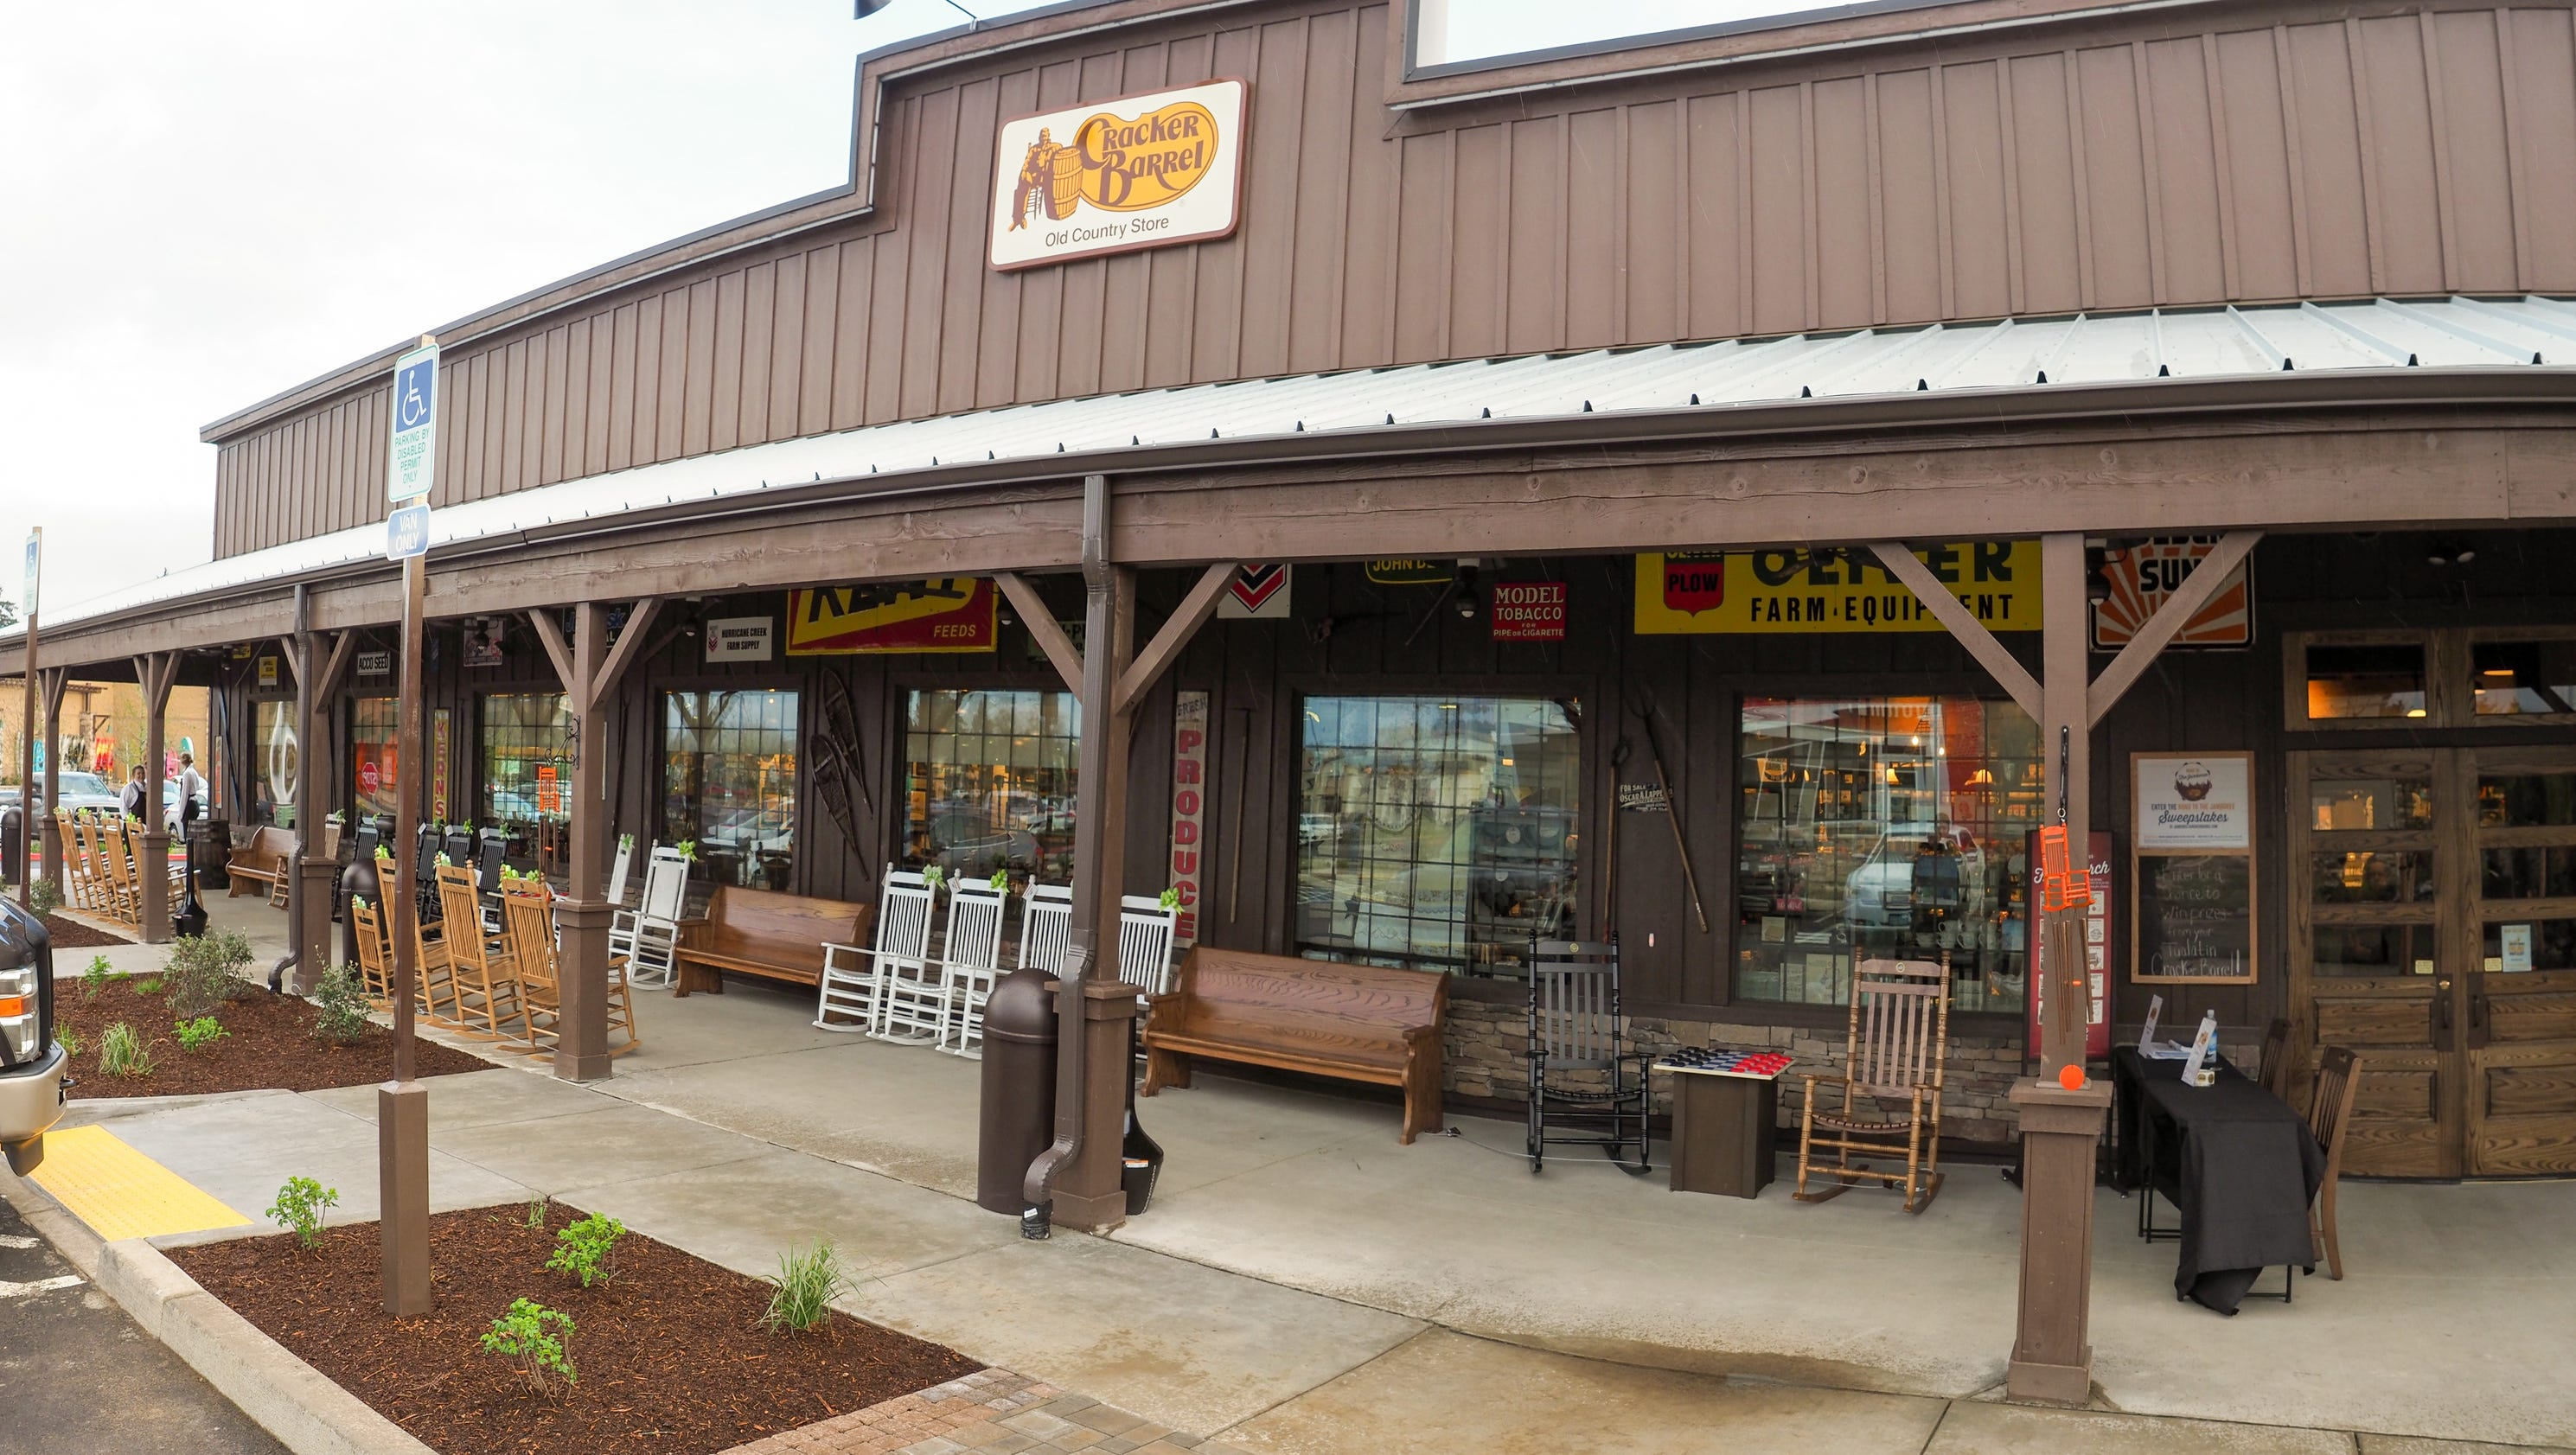 Cracker barrel opens first west coast location in tualatin for How did cracker barrel get its name